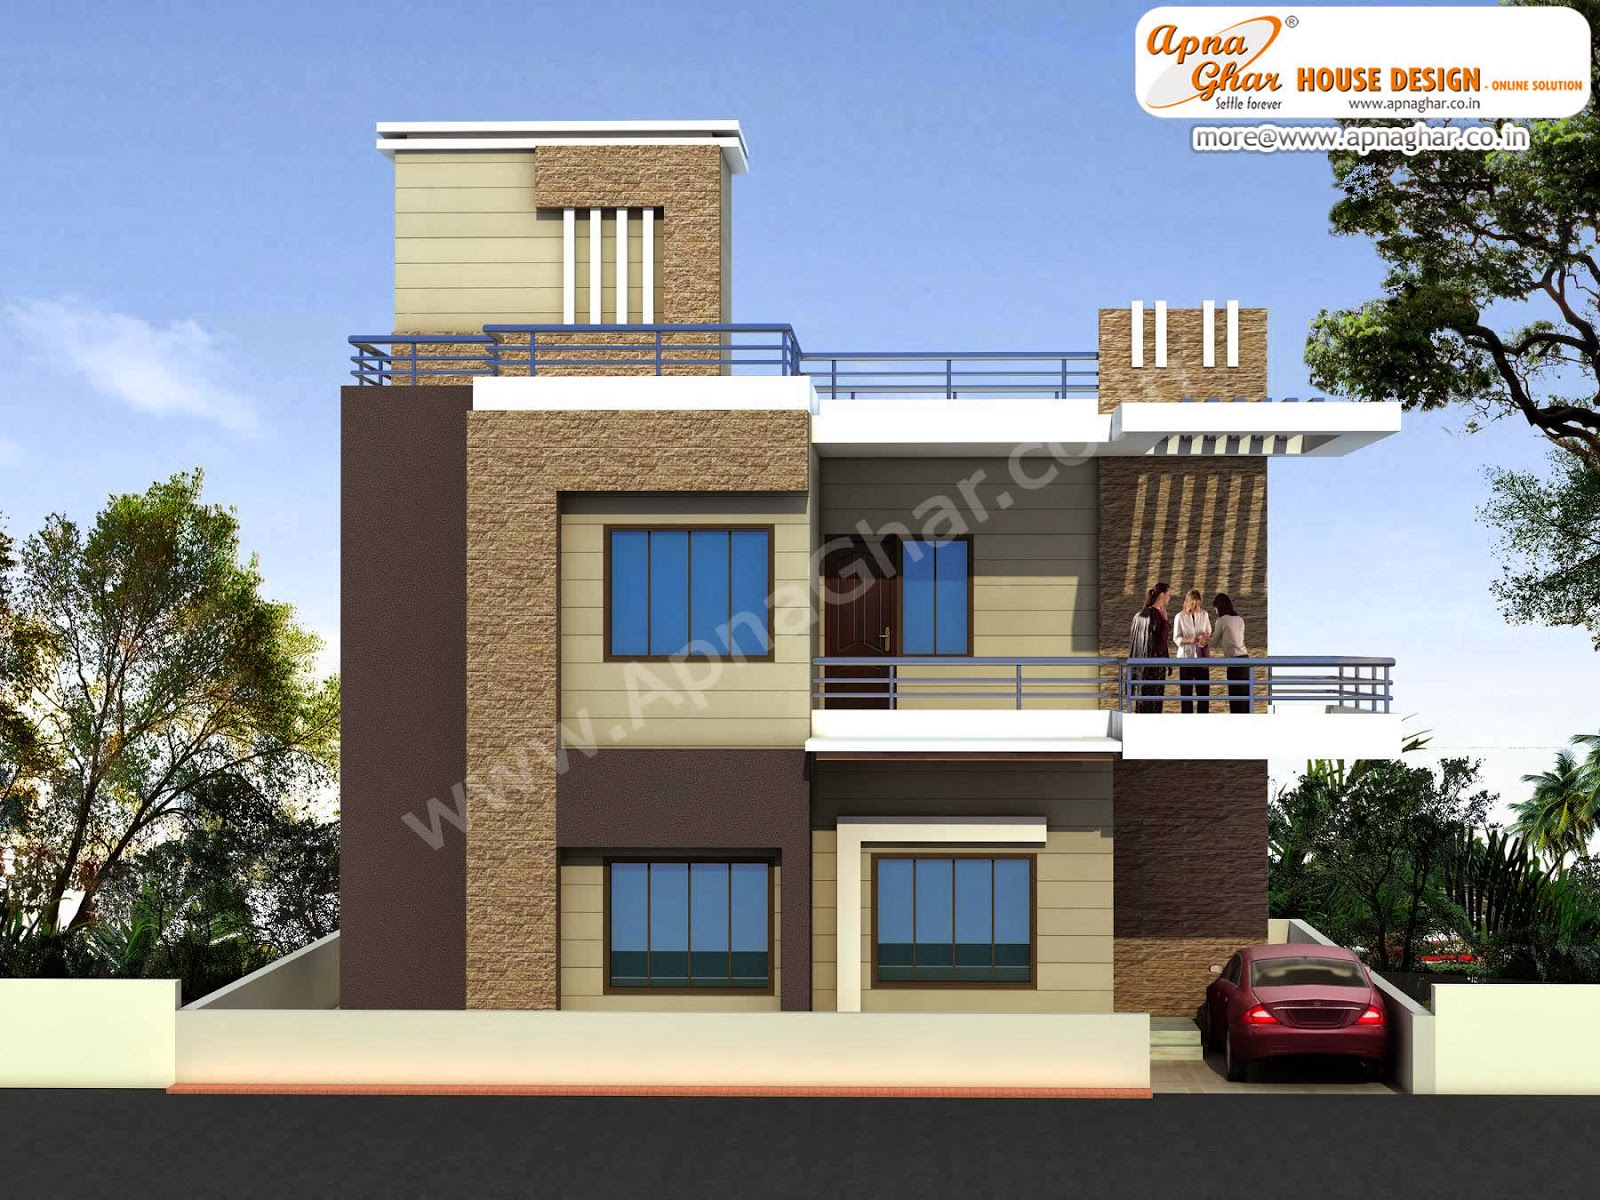 Duplex house design apnaghar house design for Duplex houseplans